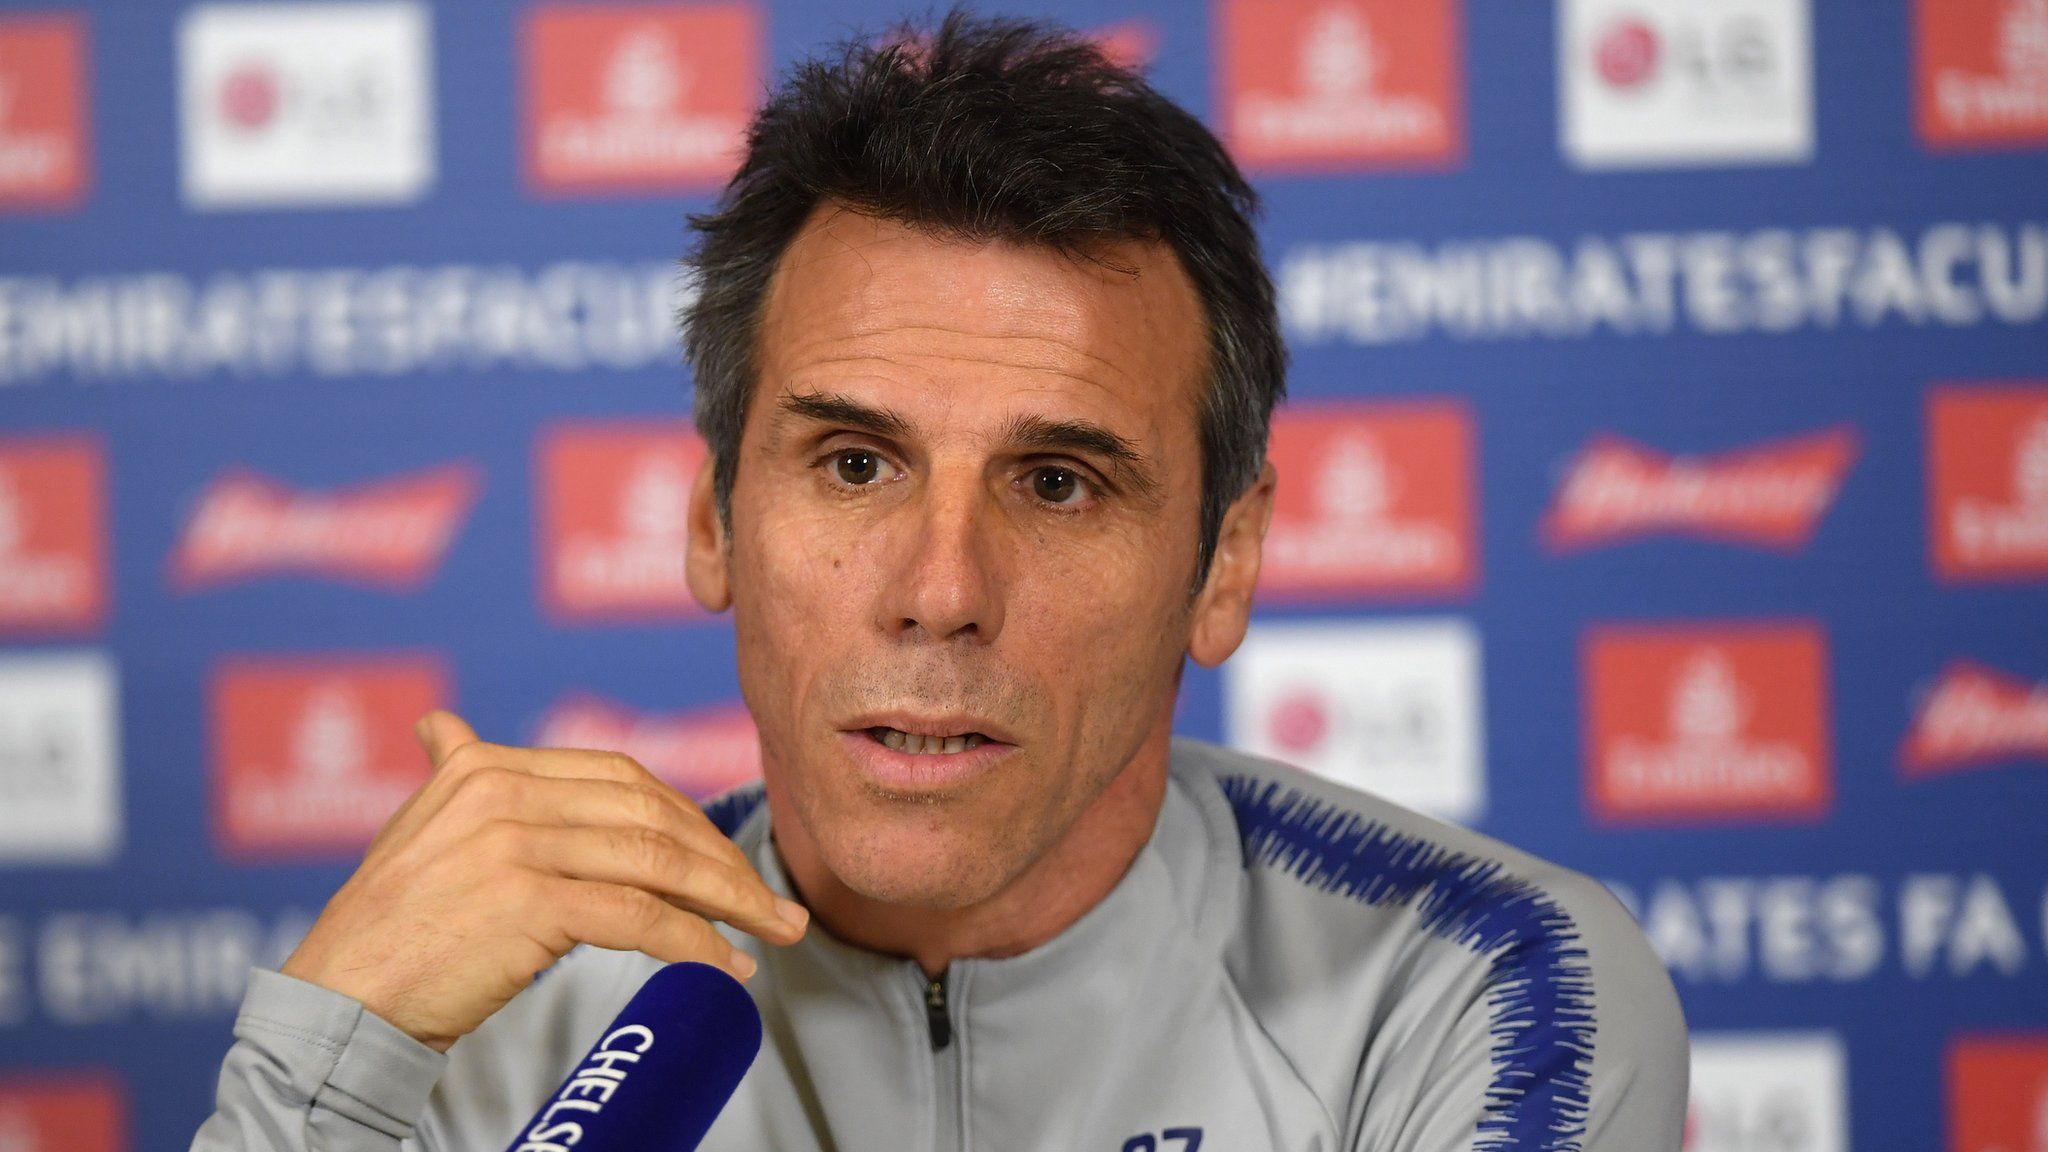 Chelsea face 'challenging' run of games, says Gianfranco Zola